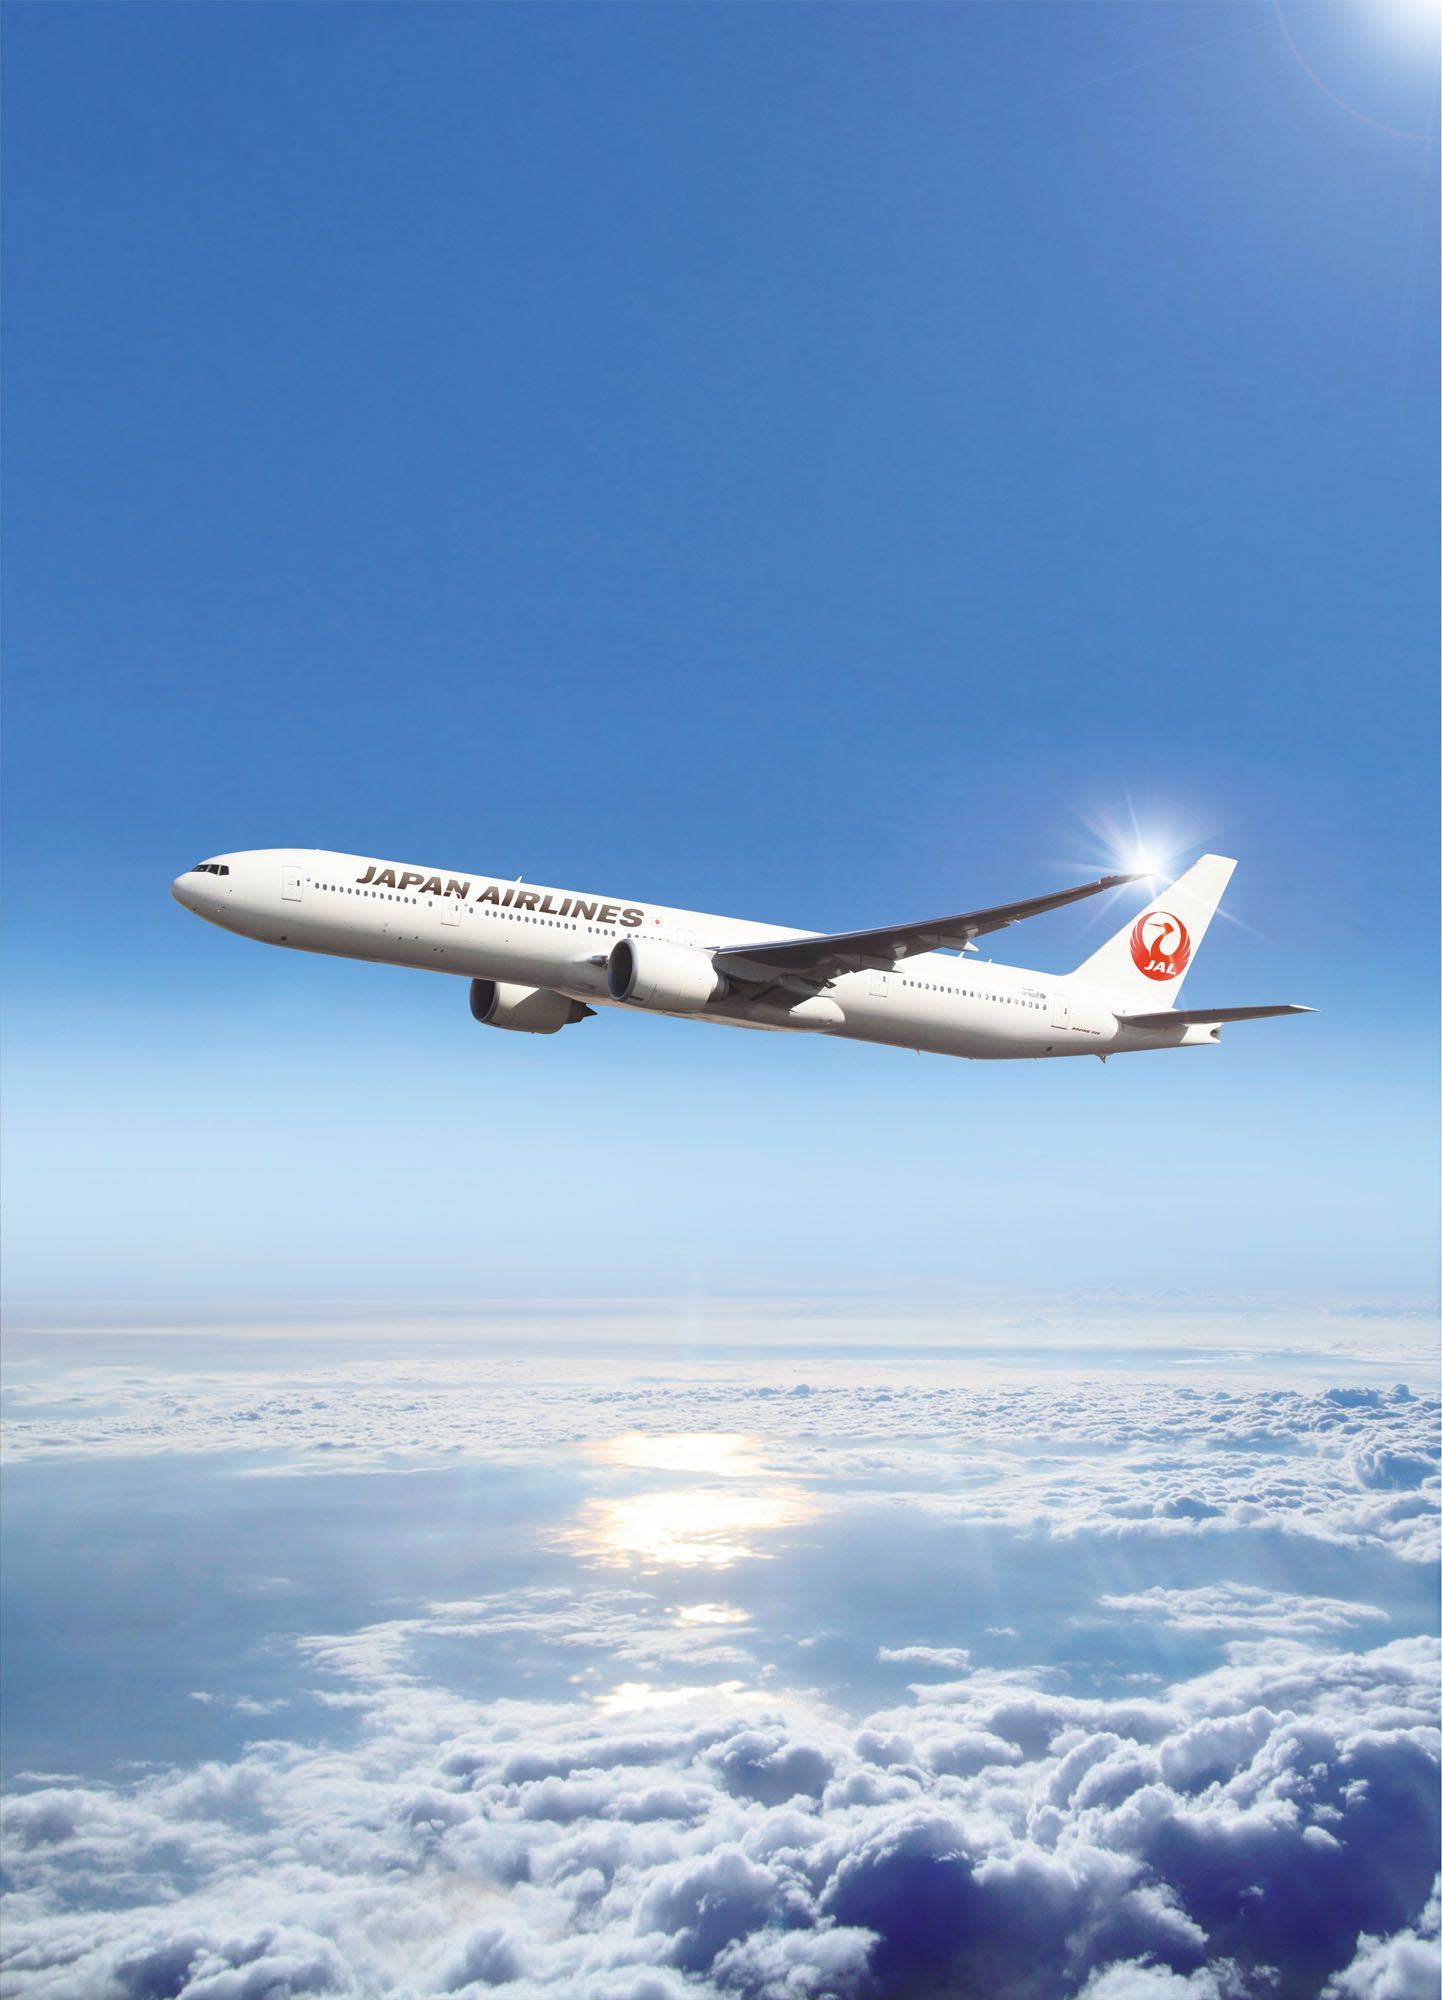 What Is the Meaning of Ikigai? Japan Airlines Shares The Secret Of Achieving A Fuller Life